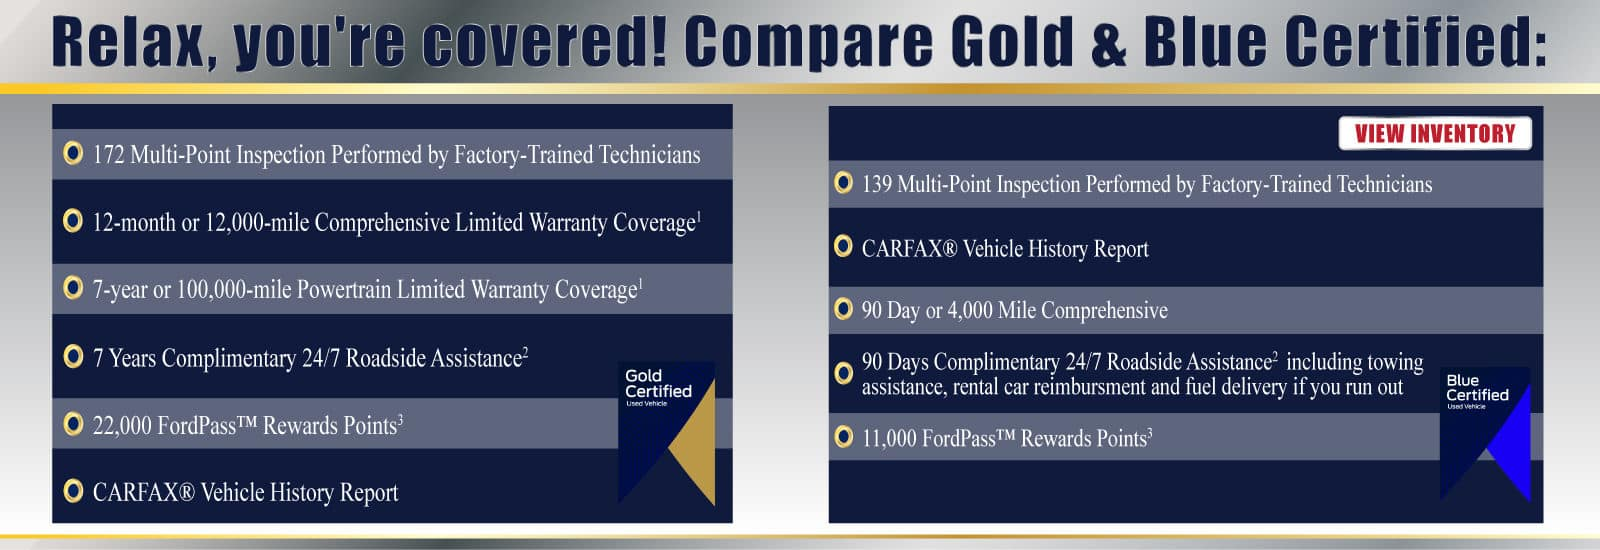 Gold-&-Blue-Certified-Web-Banner-1600×550